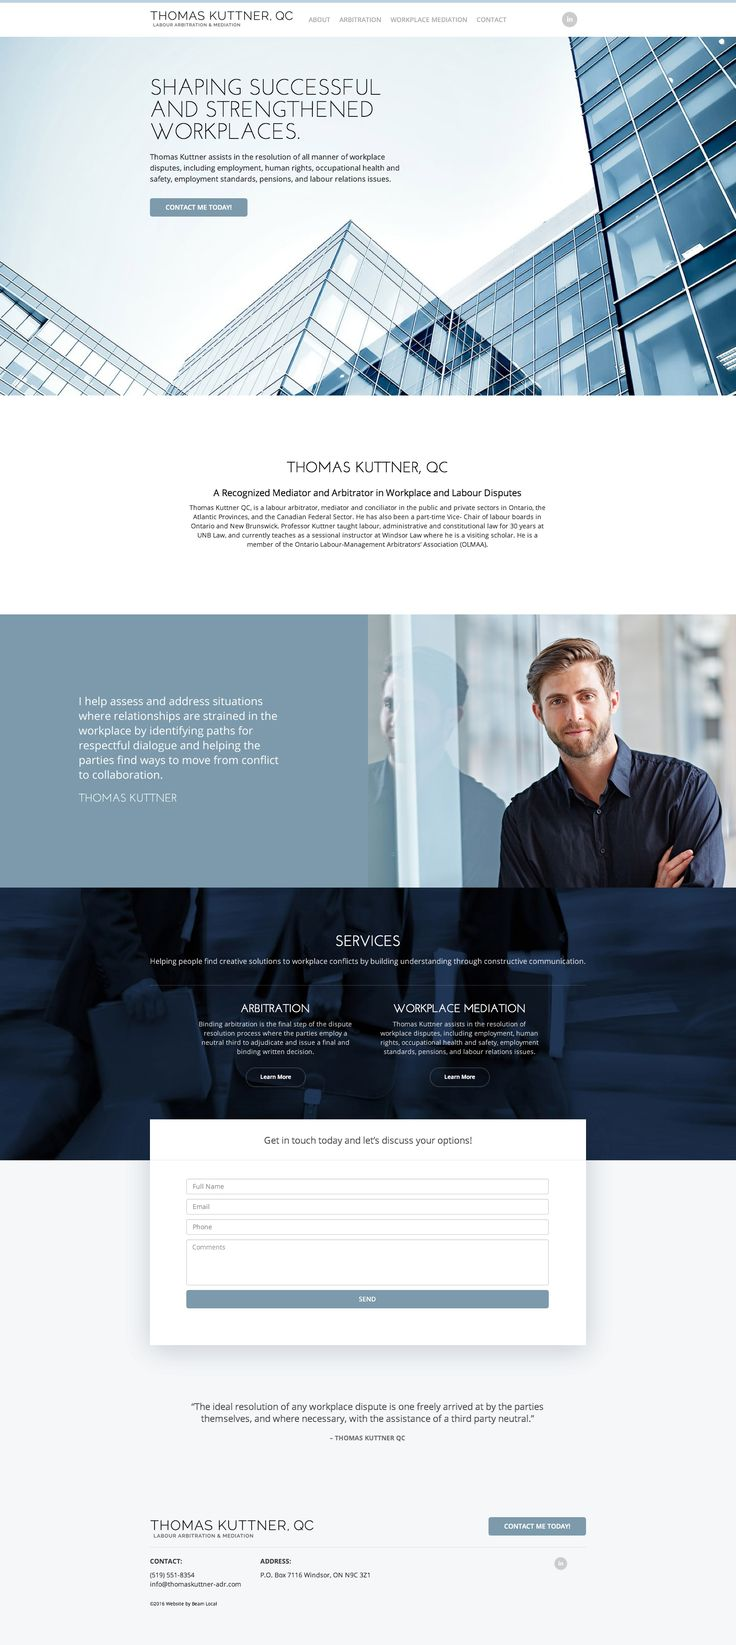 Thomas Kuttner Lawyer Website Design #lawyerwebsites #lawfirmwebsite #lawyer…